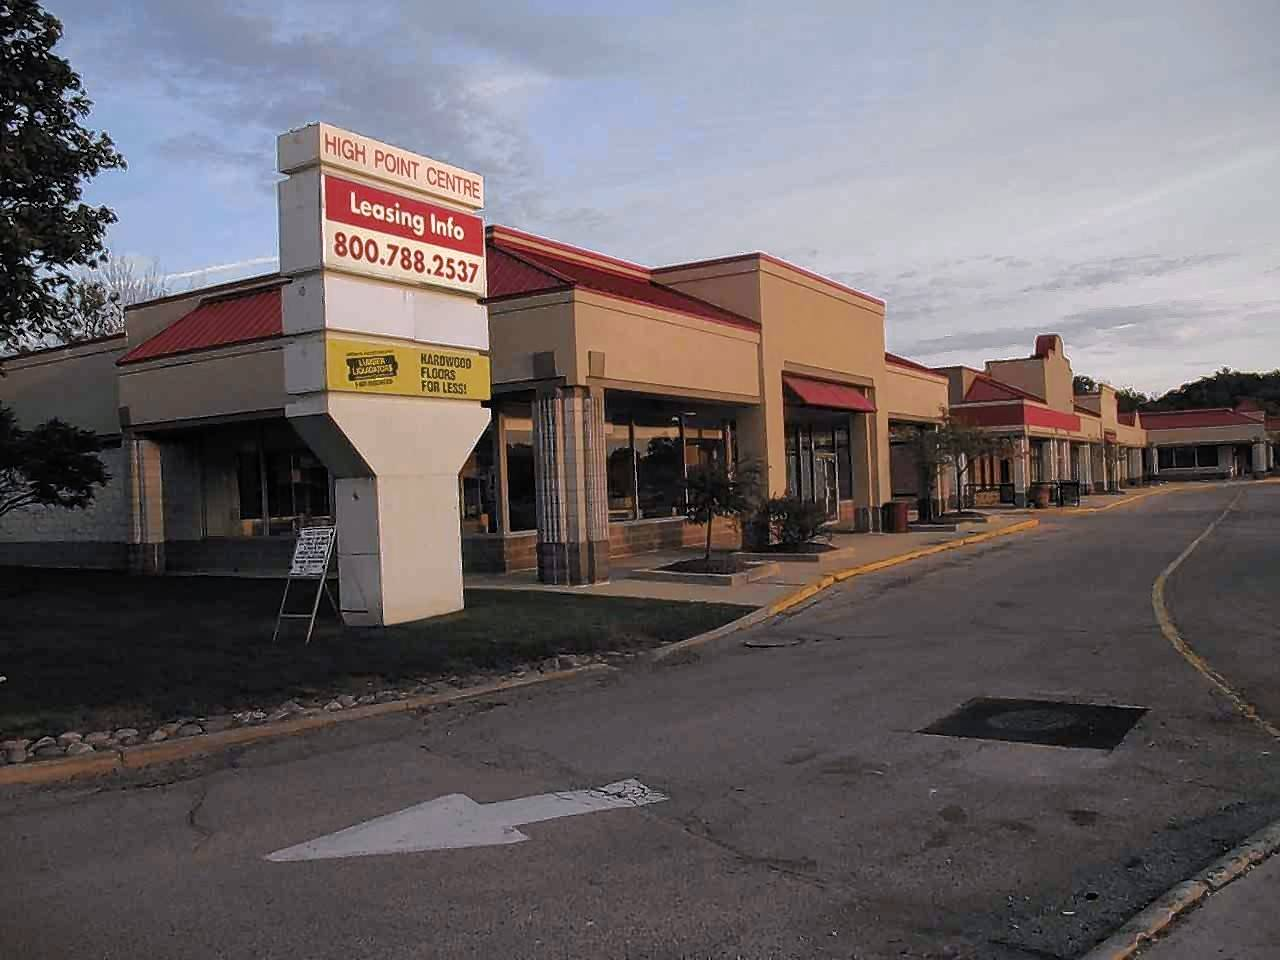 The largely vacant eastern side of the High Point Centre shopping area on the south side of Roosevelt Road in Lombard is set to be demolished next spring and rebuilt as an LA Fitness and an outlot suitable for restaurants.